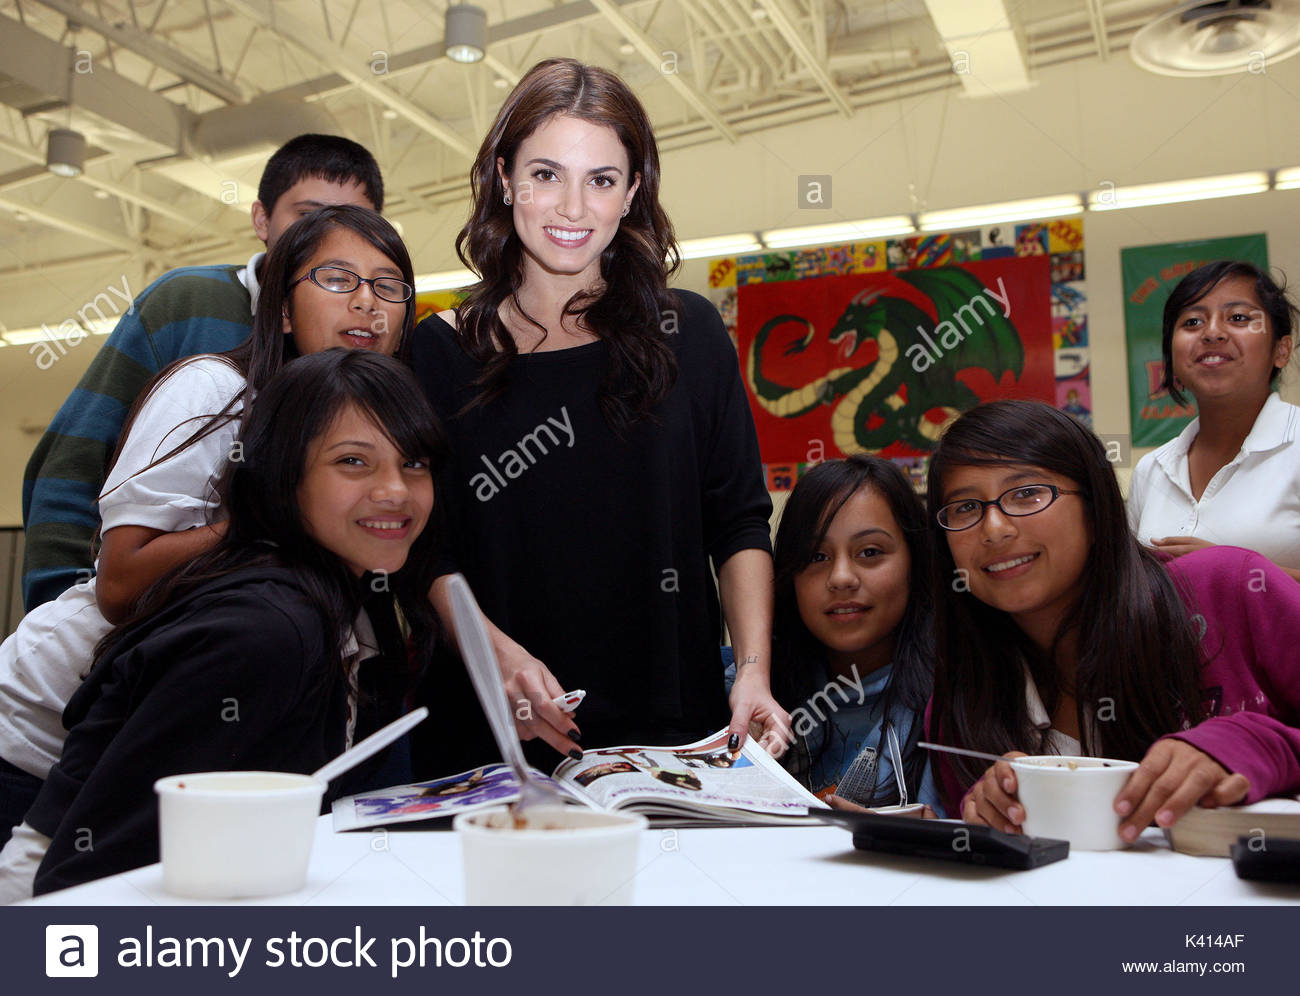 Nikki Reed Twighlight star Nikki Reed stops by Vista Middle